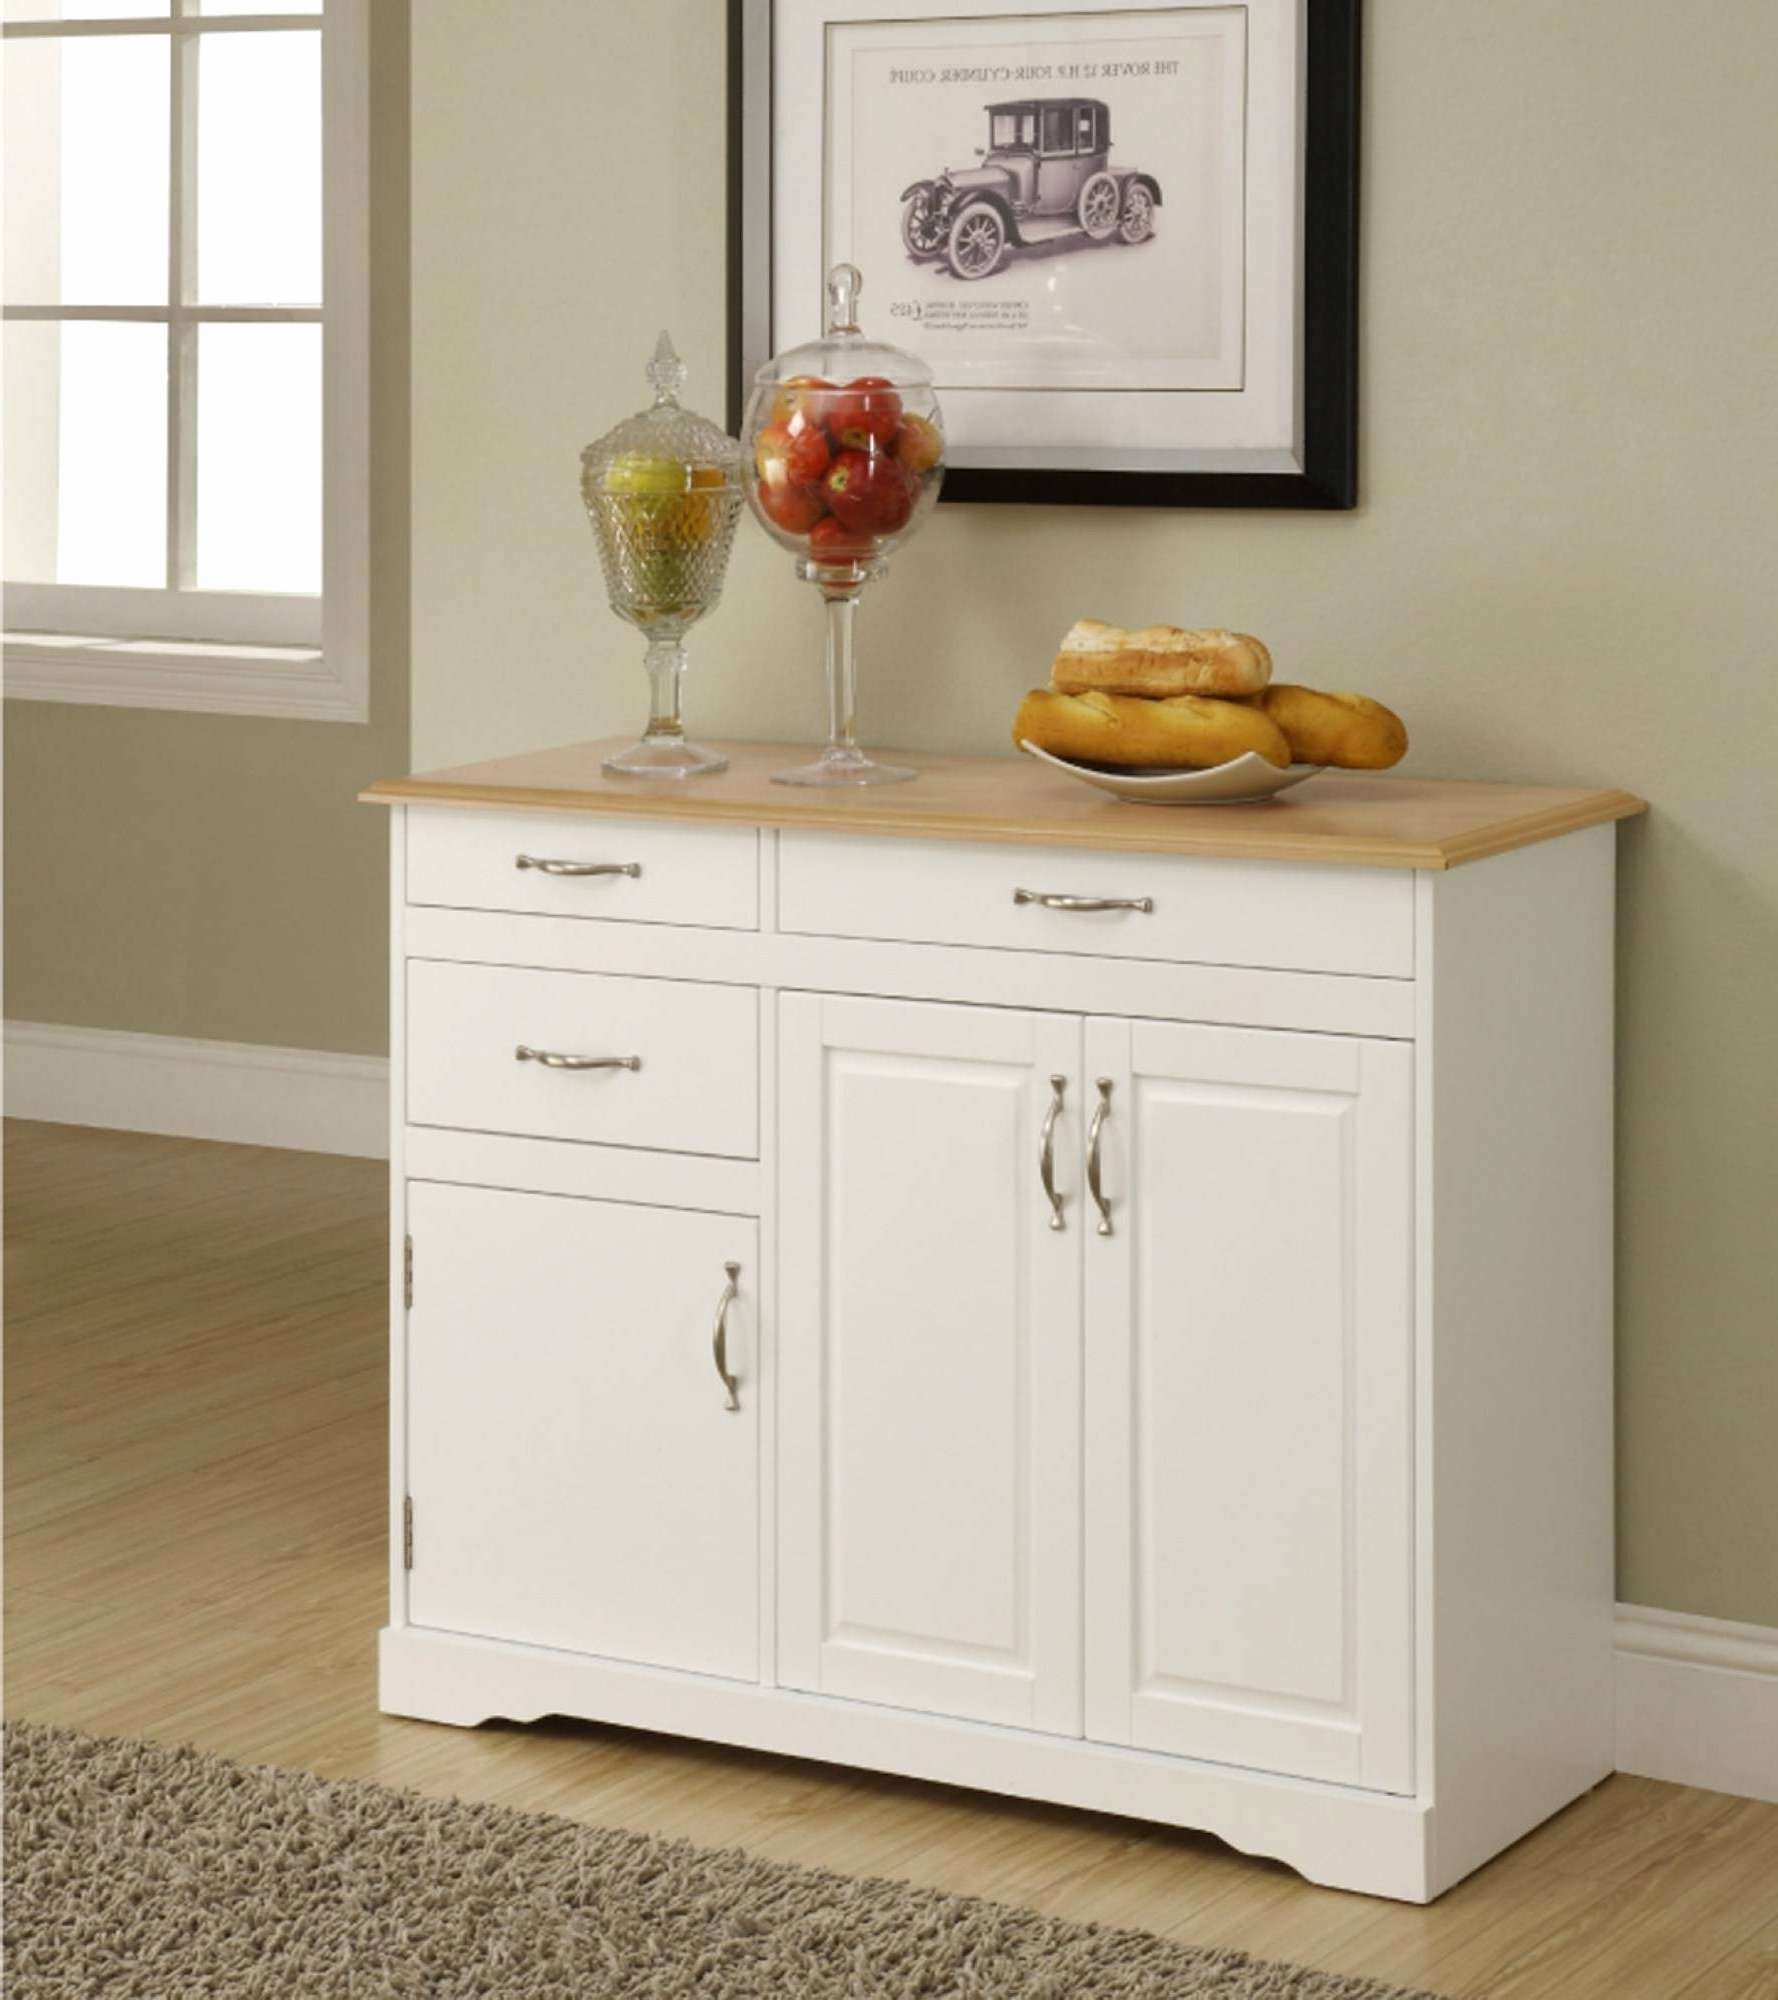 Kitchen Sideboard Ideas Elegant 15 Ideas Of White Kitchen Intended For Elegant Sideboards (Gallery 17 of 20)